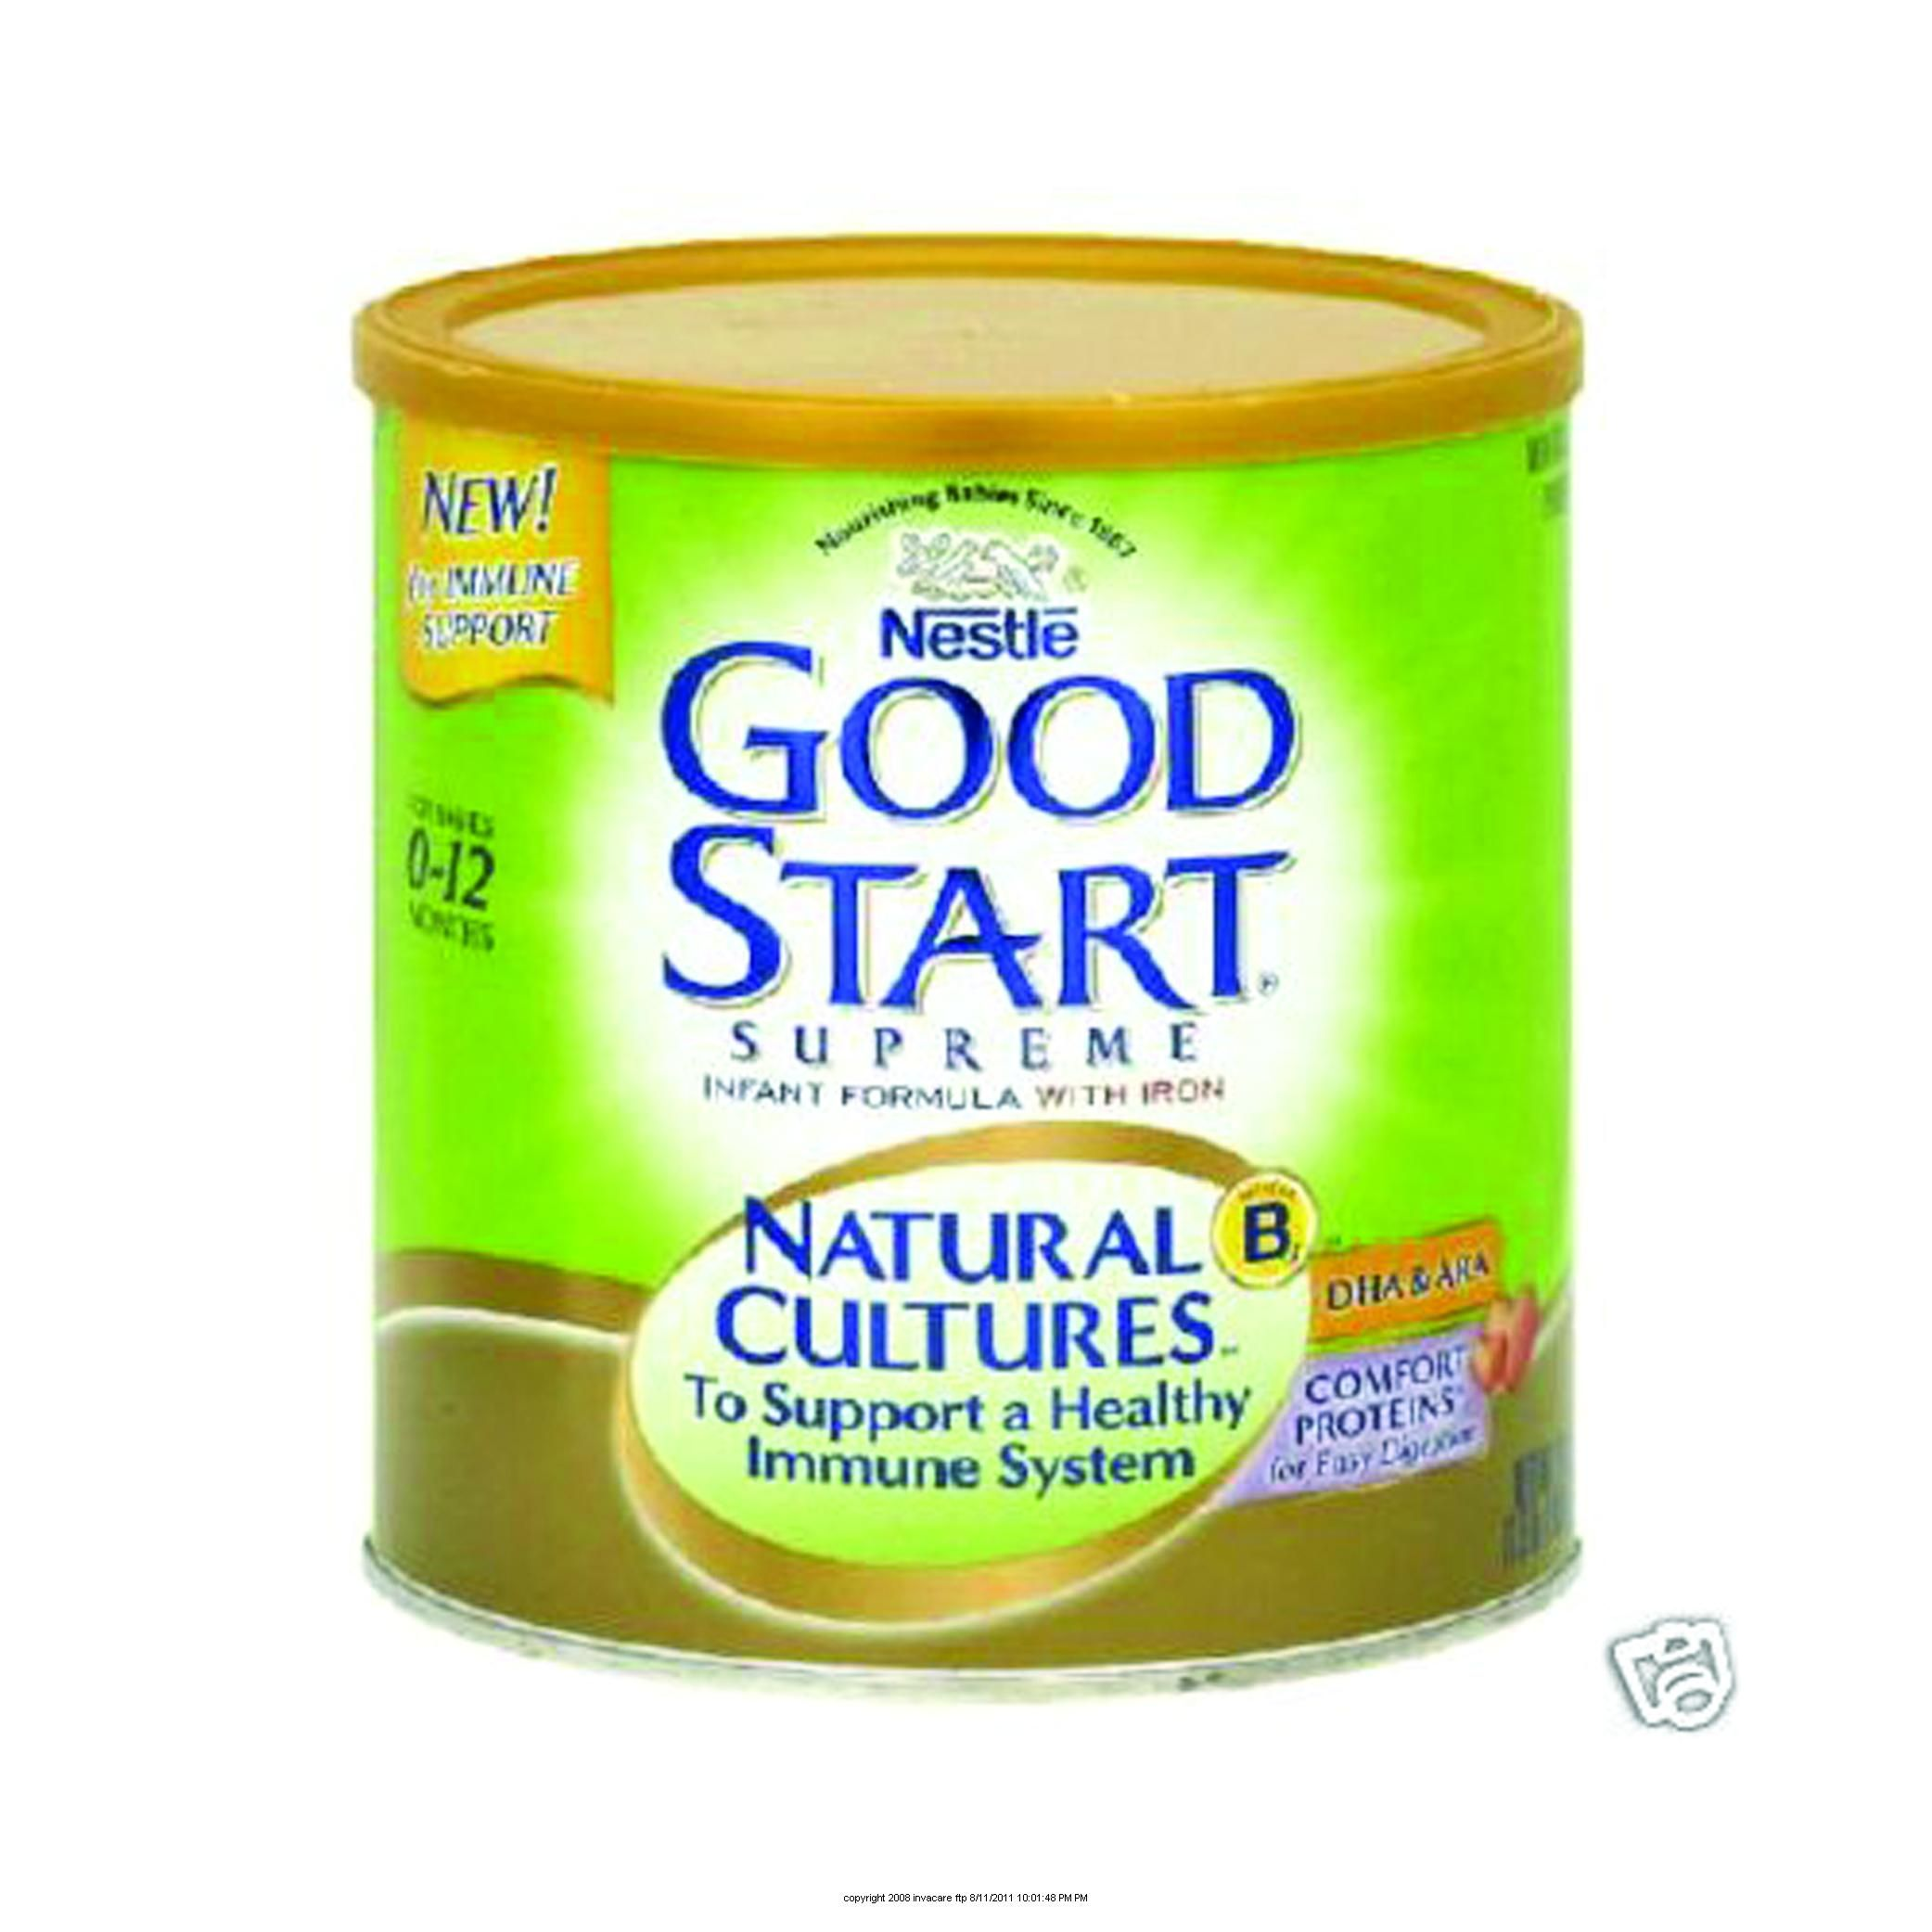 Nestle Good Start Supreme Natural Cultures Infant Formula Baby Formula Nutrition Healthy